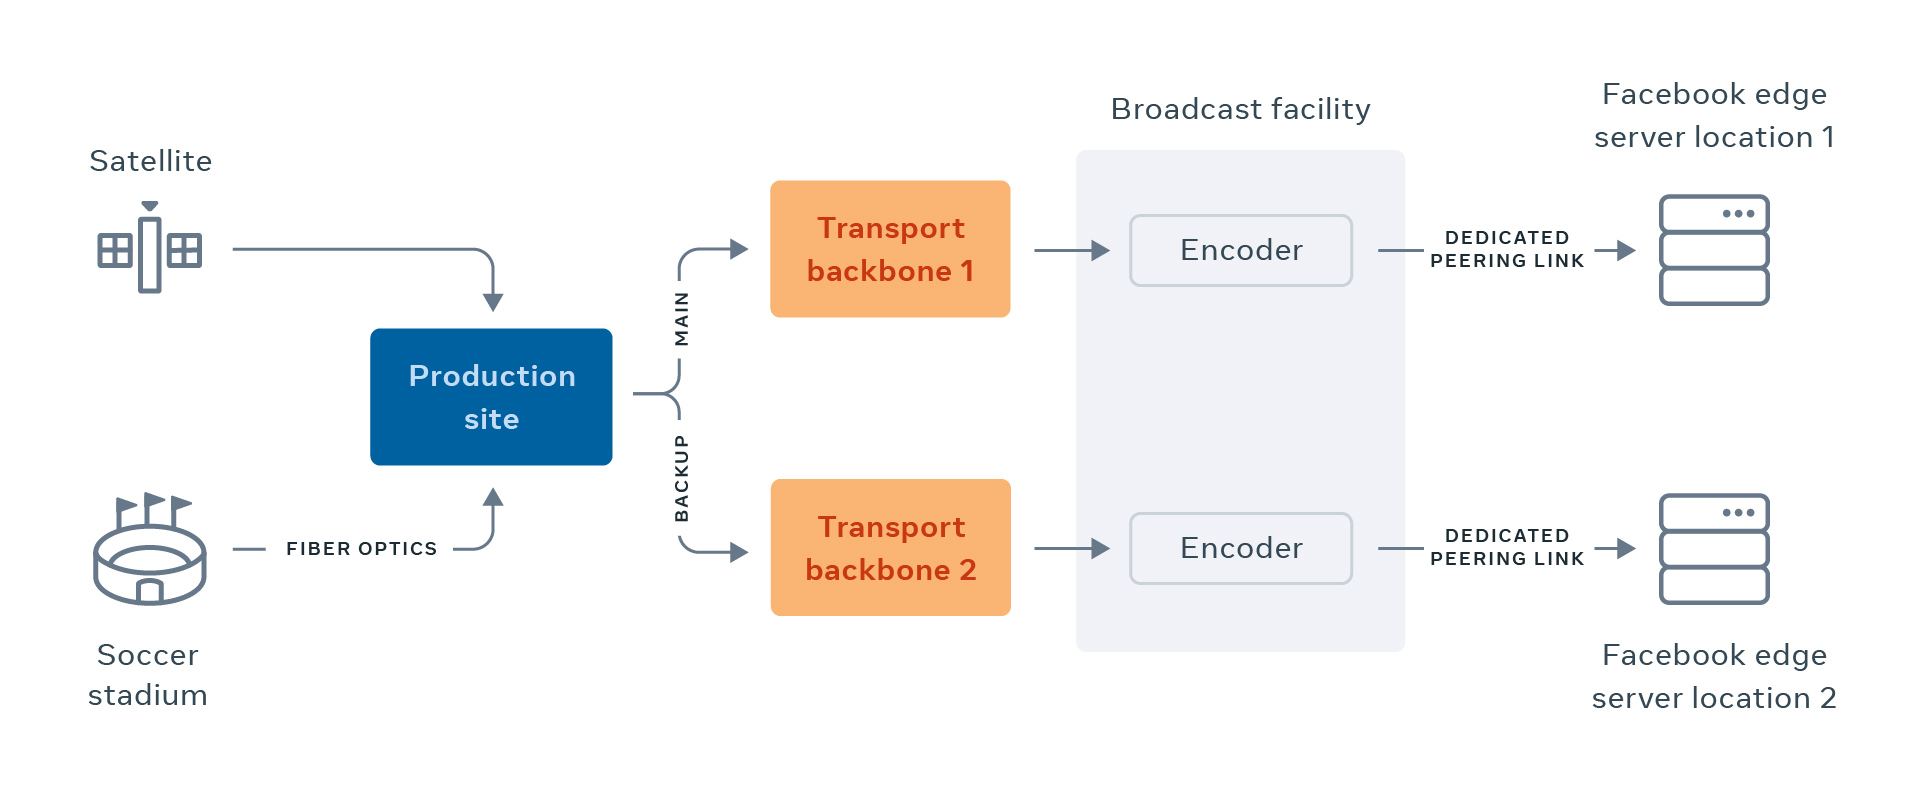 To support broadcast quality Live streaming, we leverage a broadcast facility that's connected to our data centers using dedicated and diverse connections.